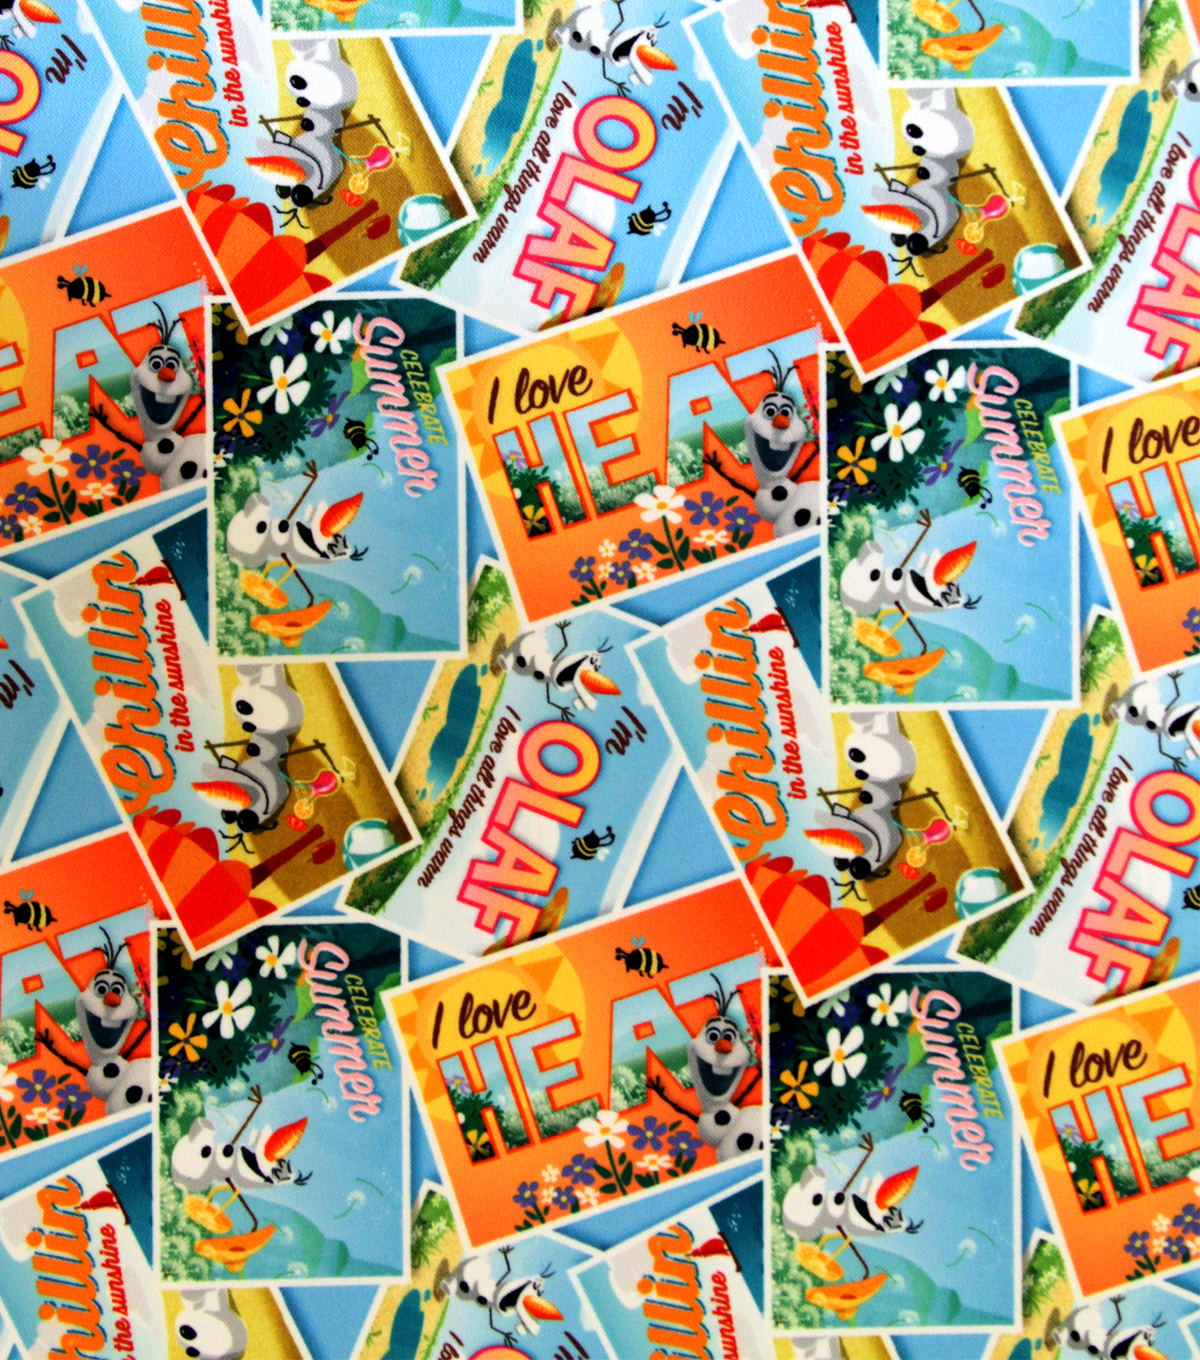 Olaf Postcard Toss Fabric from Joann Fabrics and Crafts